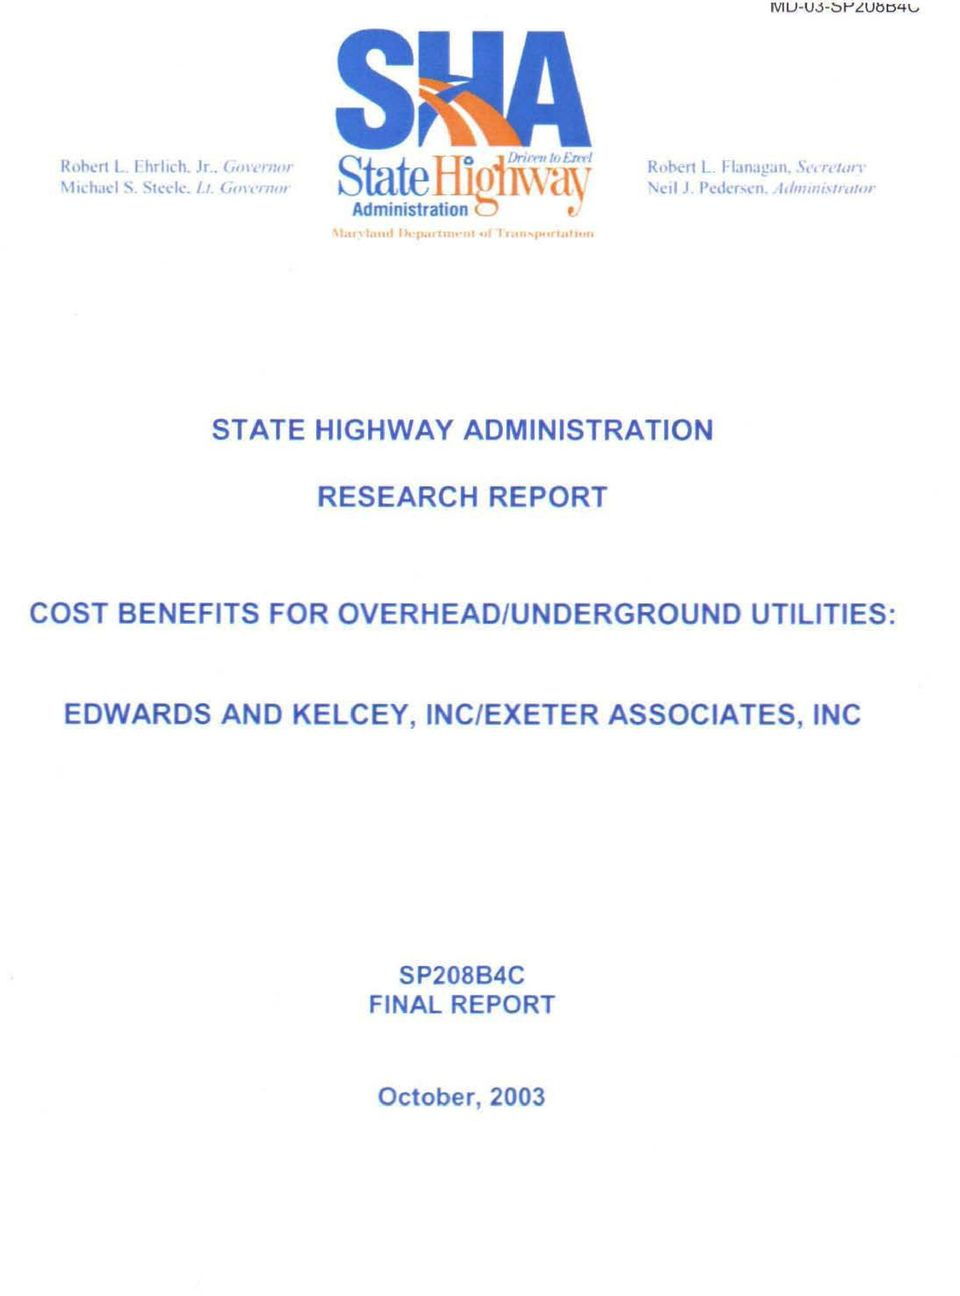 "1,(l/IlII/'II,/I"""" STATE HIGHWAY ADMINISTRATION RESEARCH REPORT COST BENEFITS FOR"